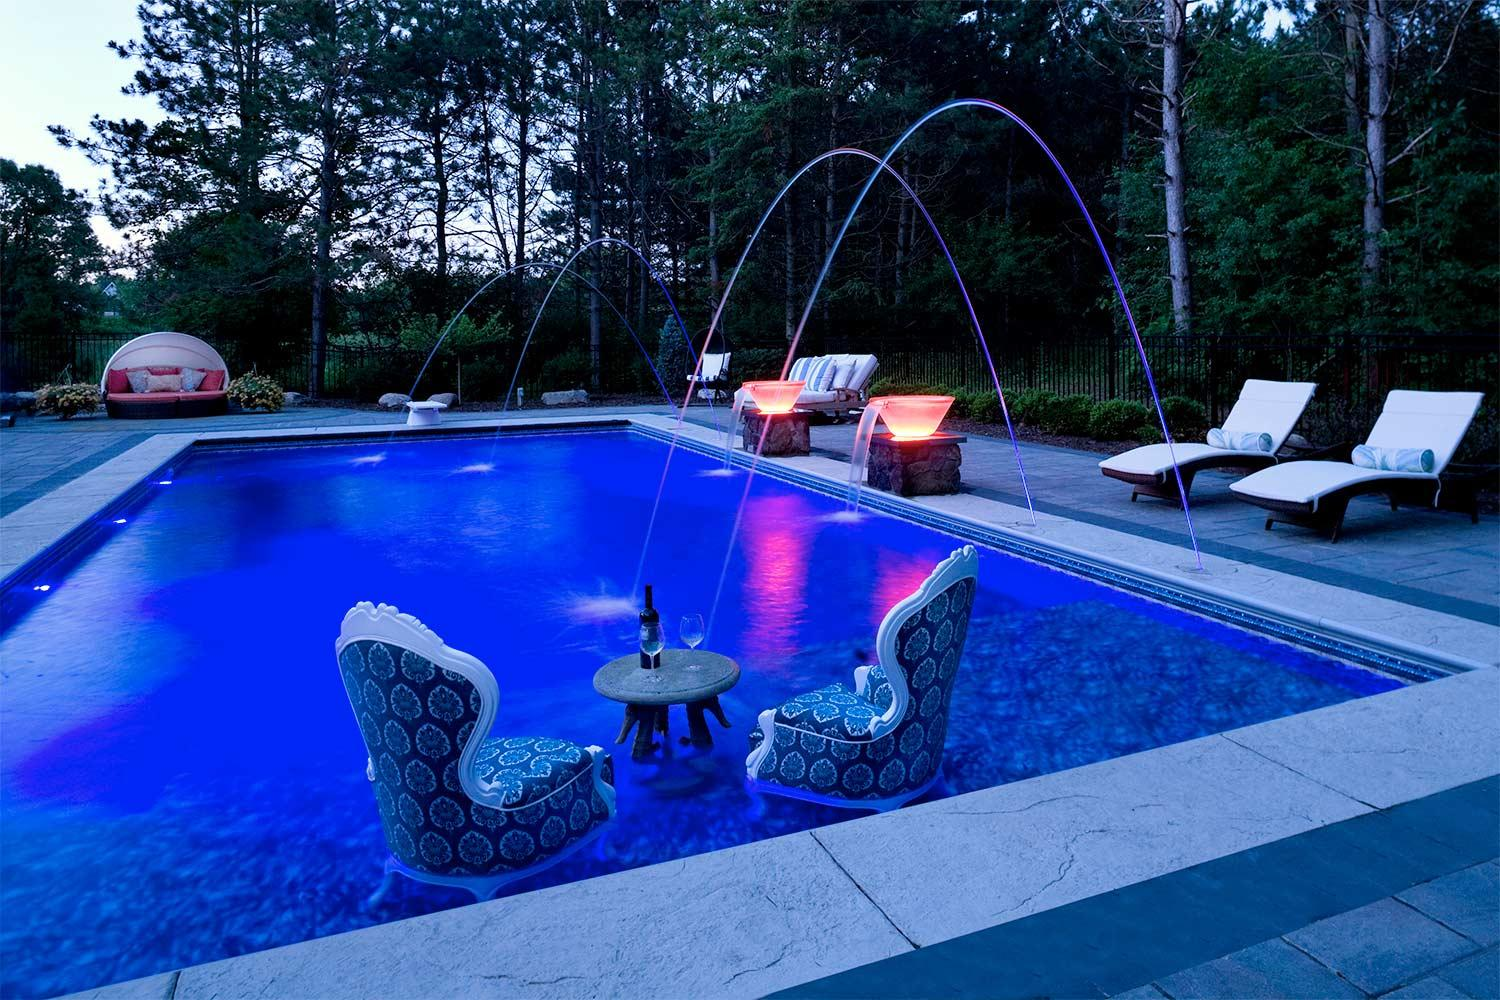 Two chairs in the swimming pool with illuminated water feature bowls and laminar jets ino the surface of the pool.